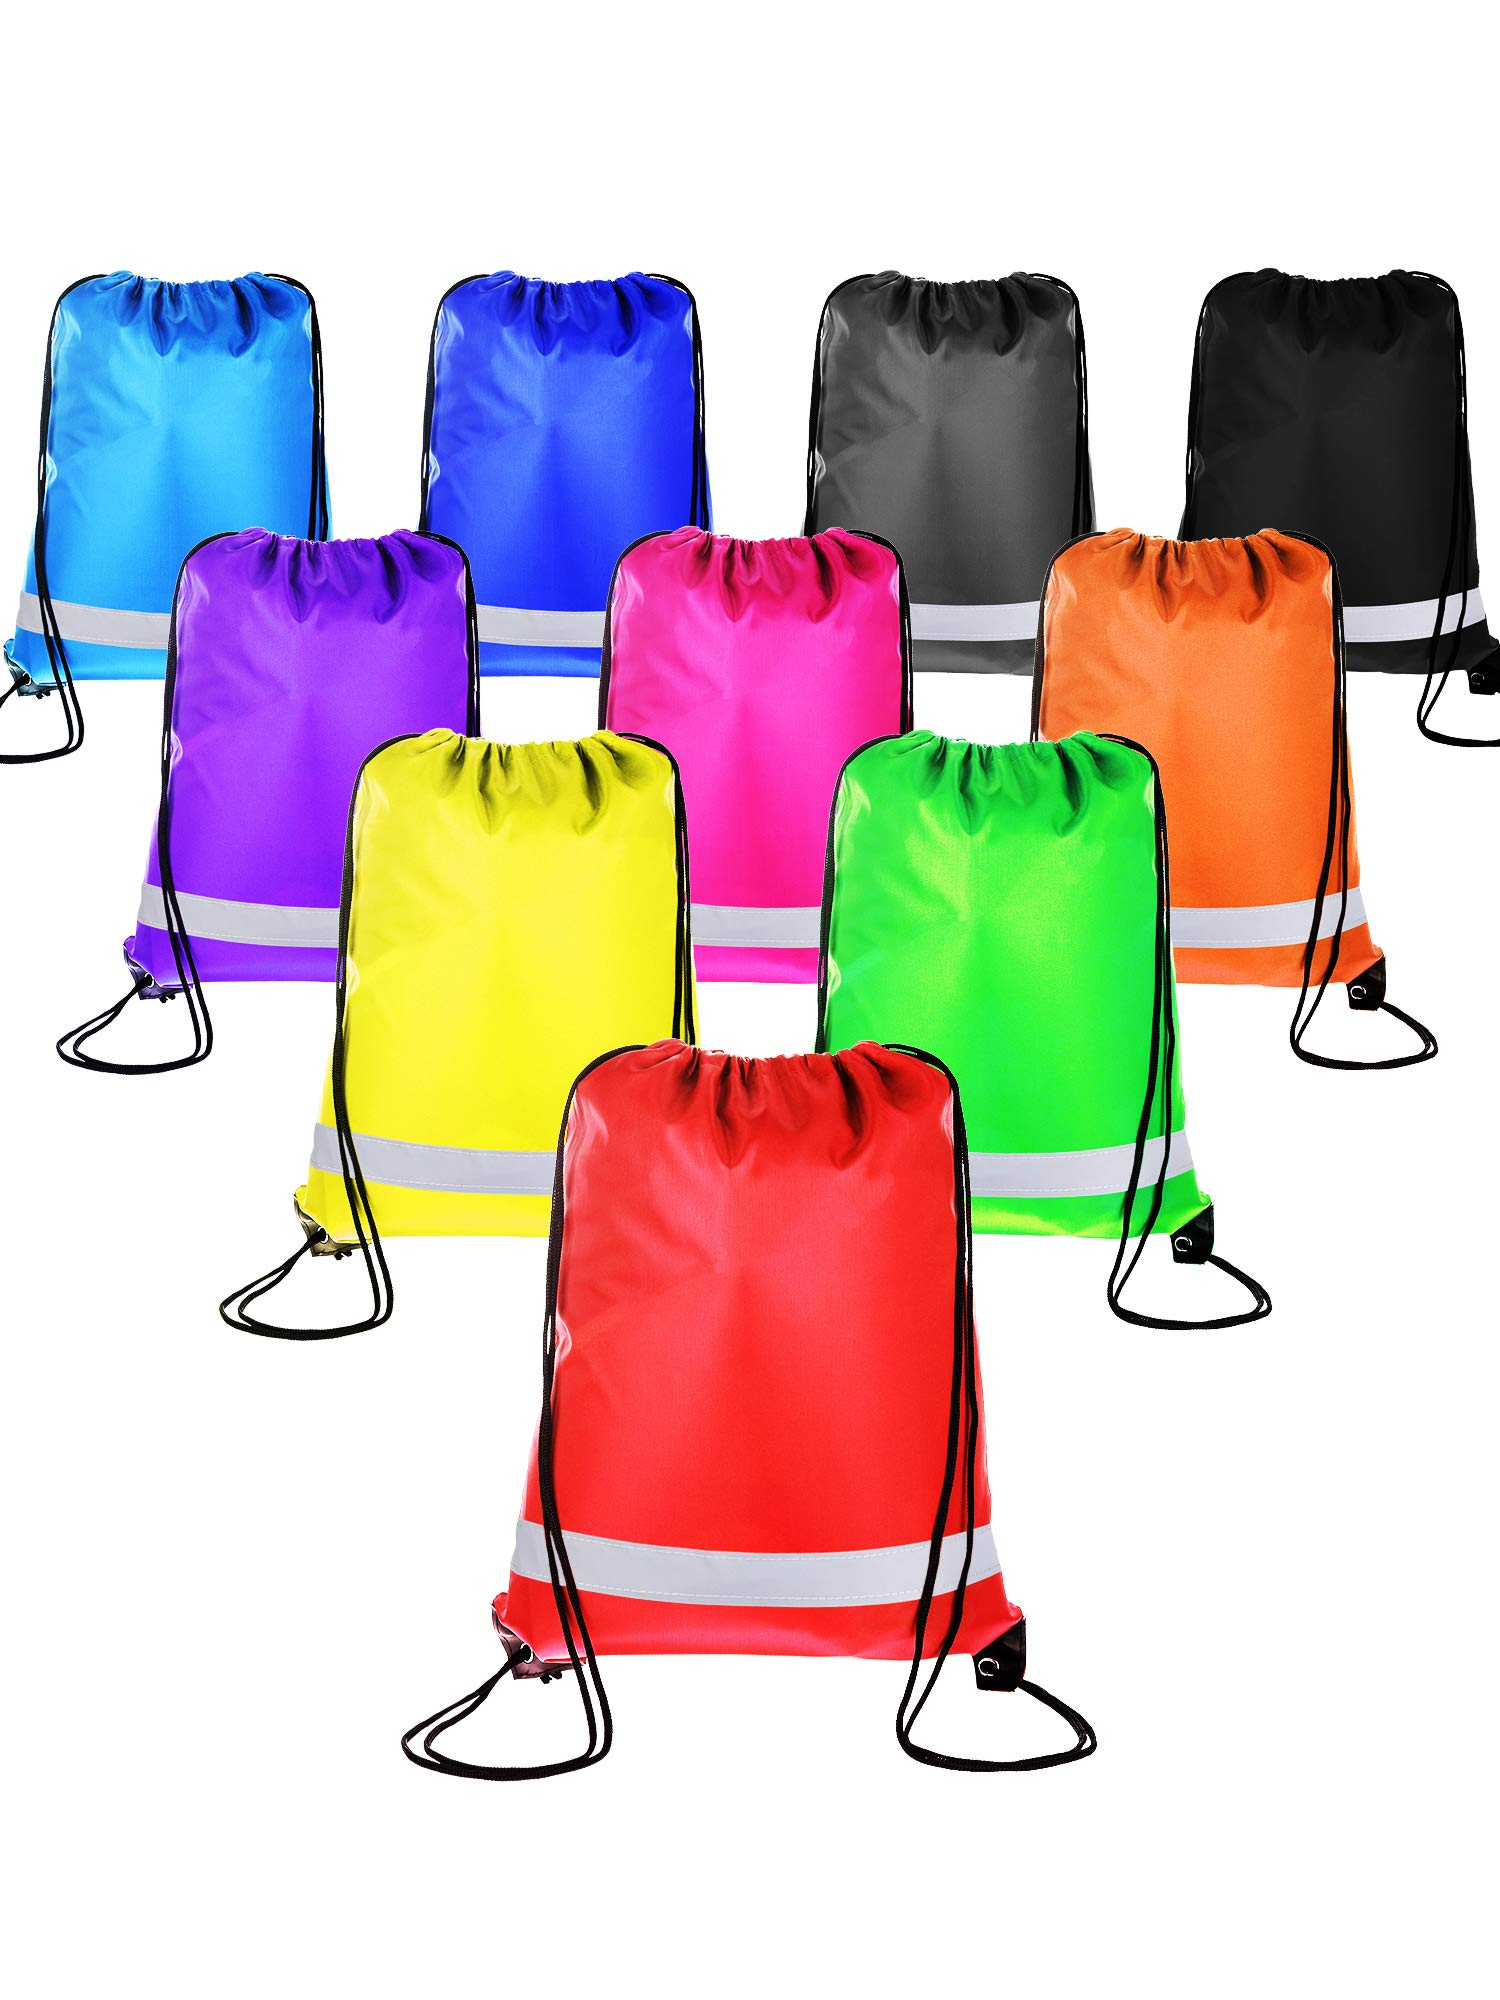 BBTO 10 Pieces Drawstring Backpack Sport Bag Cinch Tote Travel Rucksack for Traveling and Storage (Reflective 10 Colors)